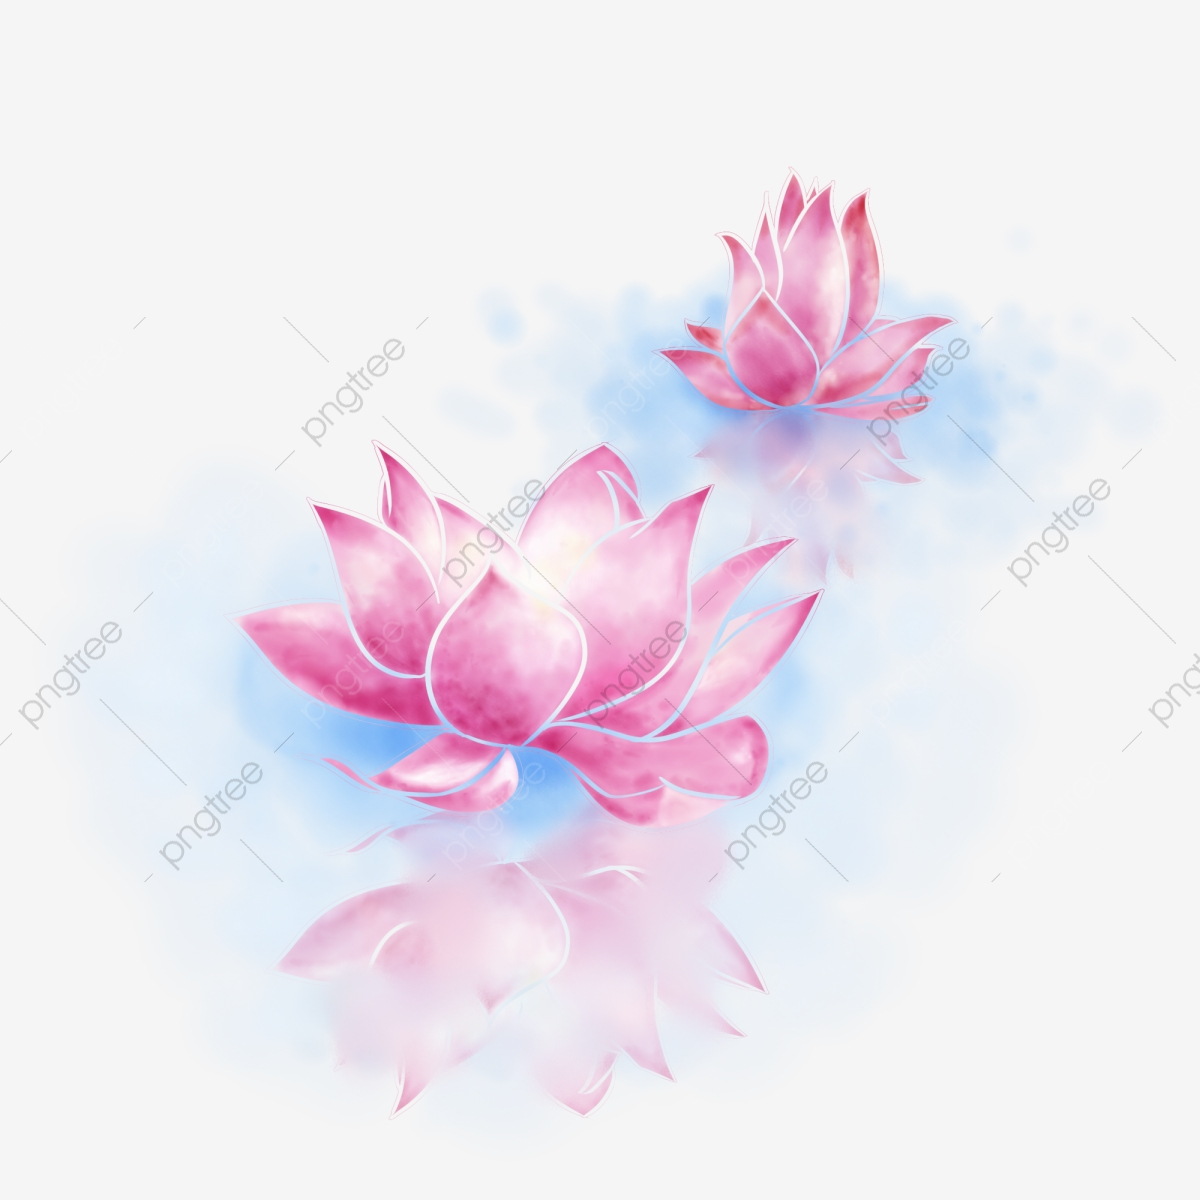 Fresh And Elegant Watercolor Lotus Flower Reflection In Water